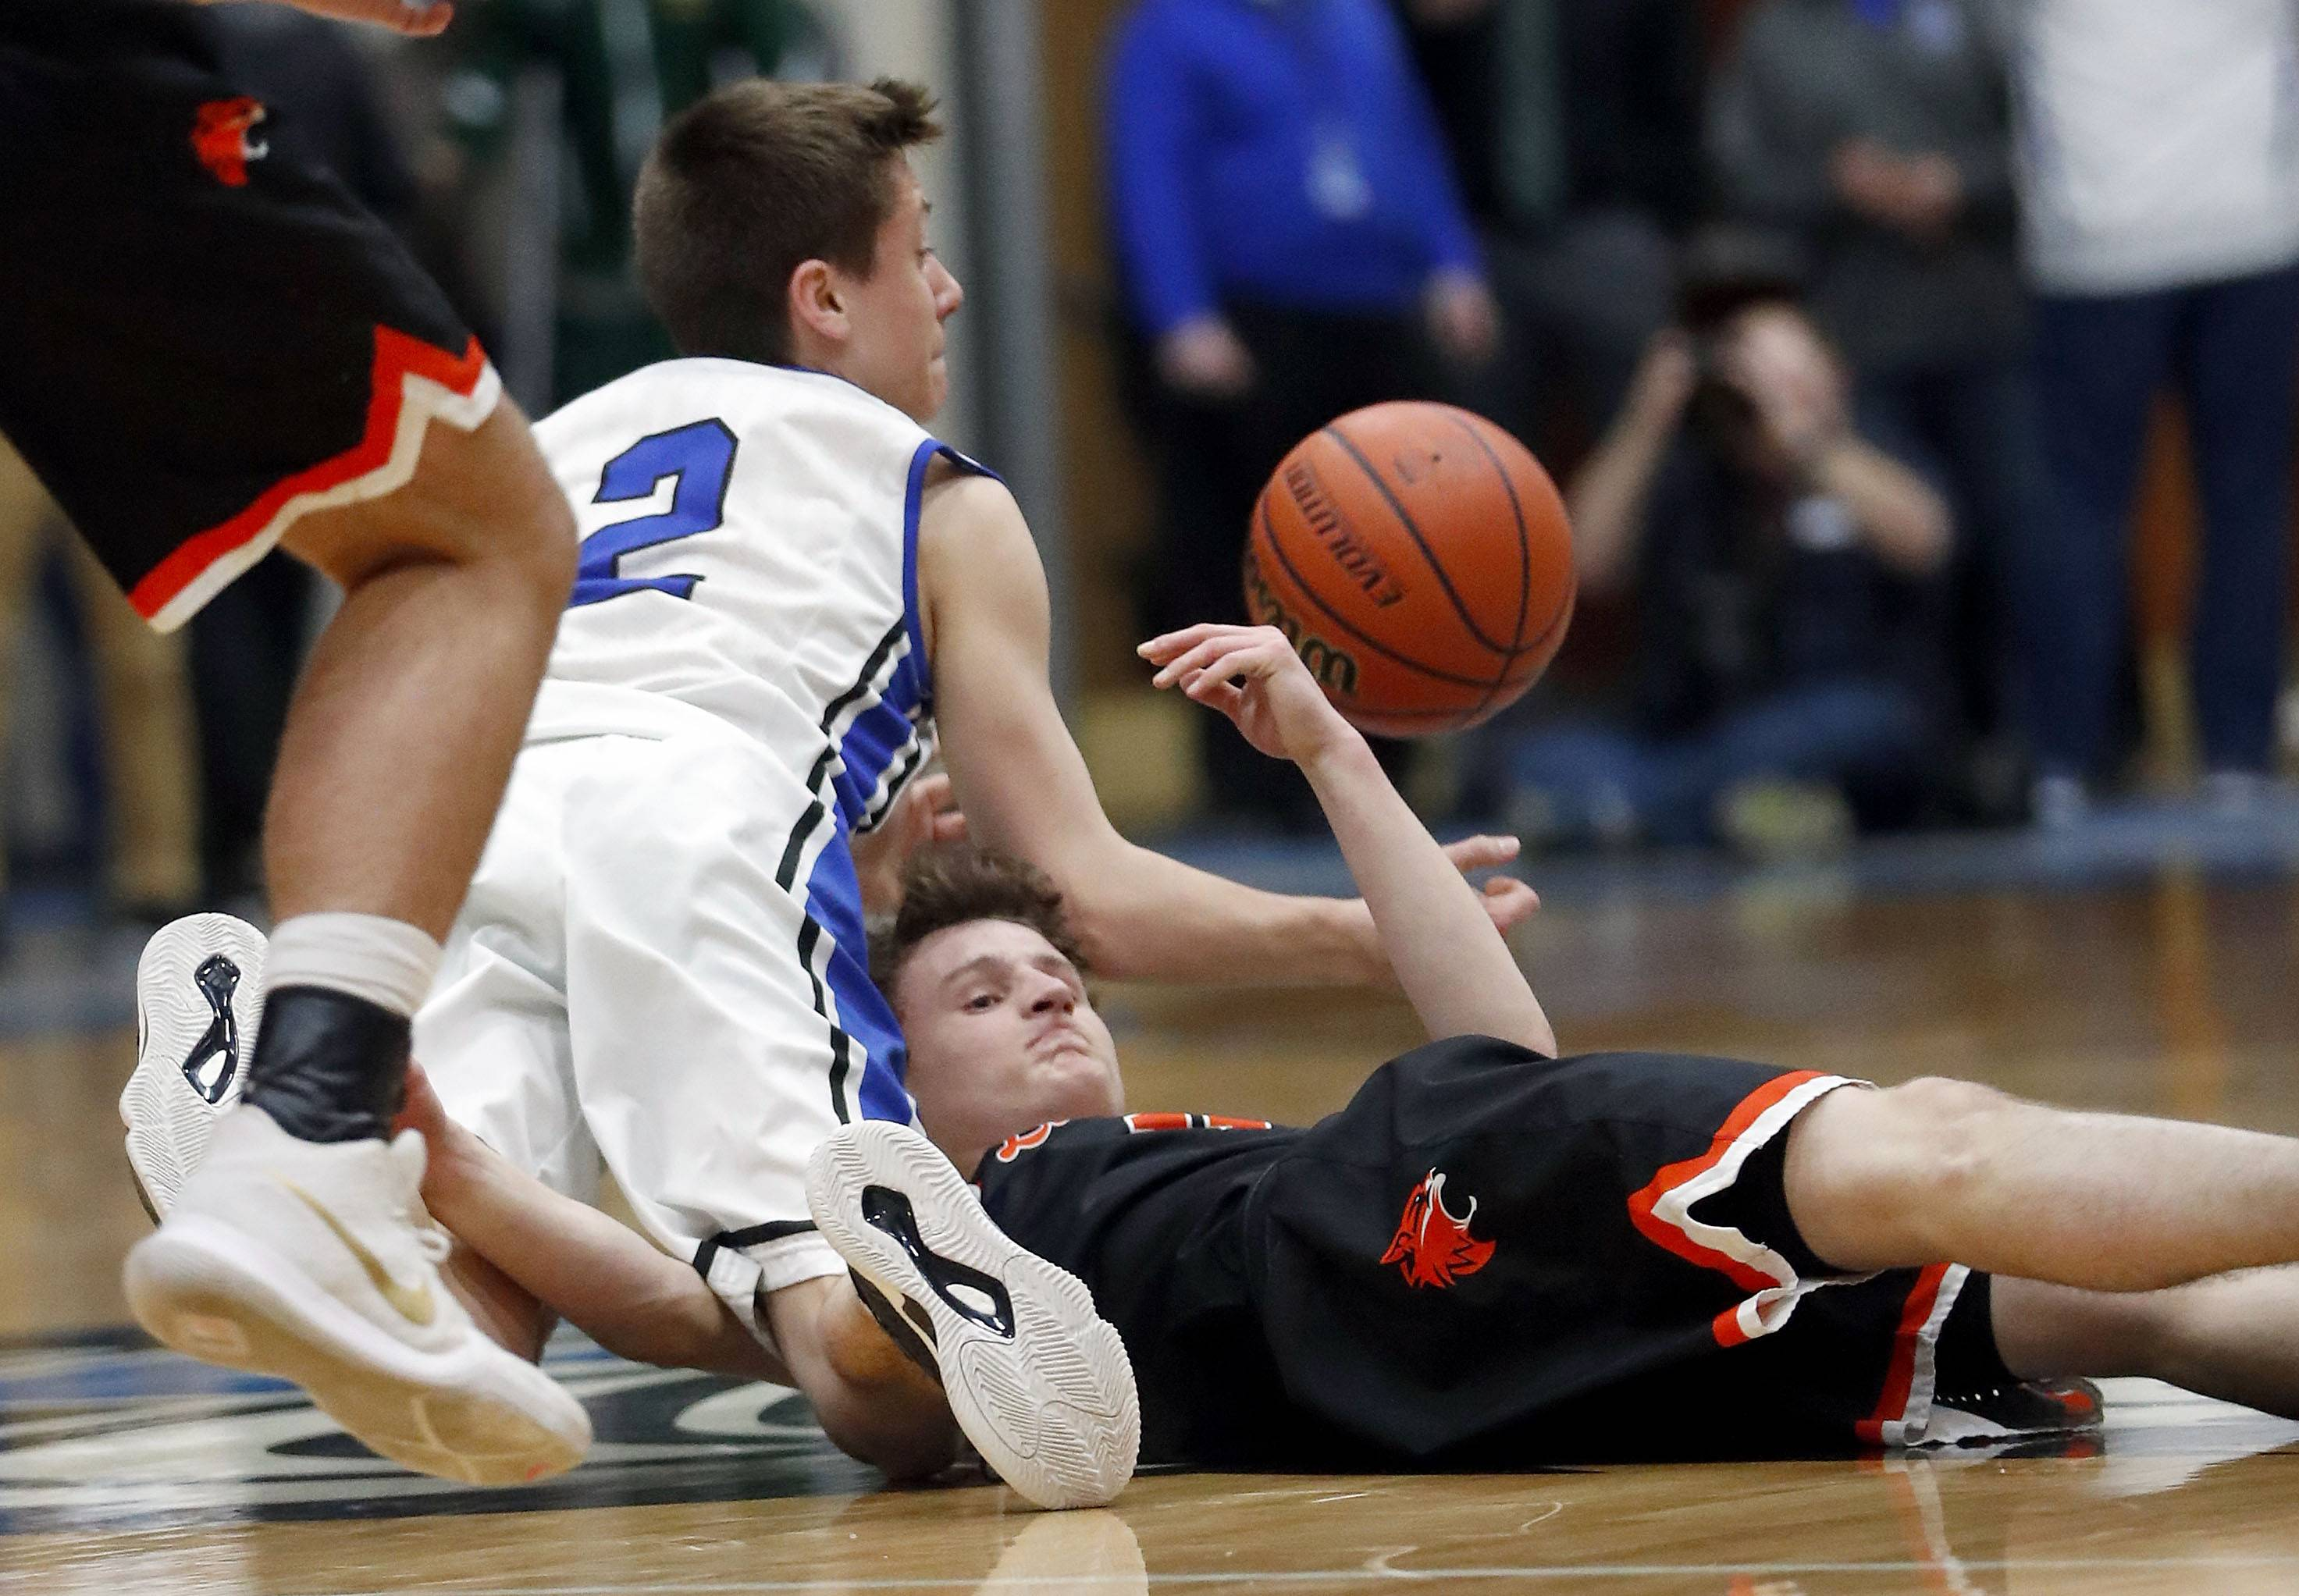 Lake Zurich's JR Cison (2) and Libertyville's Josh Steinhaus battle for a loose ball during the Class 4A sectional semifinal at Lake Zurich High School on Tuesday.